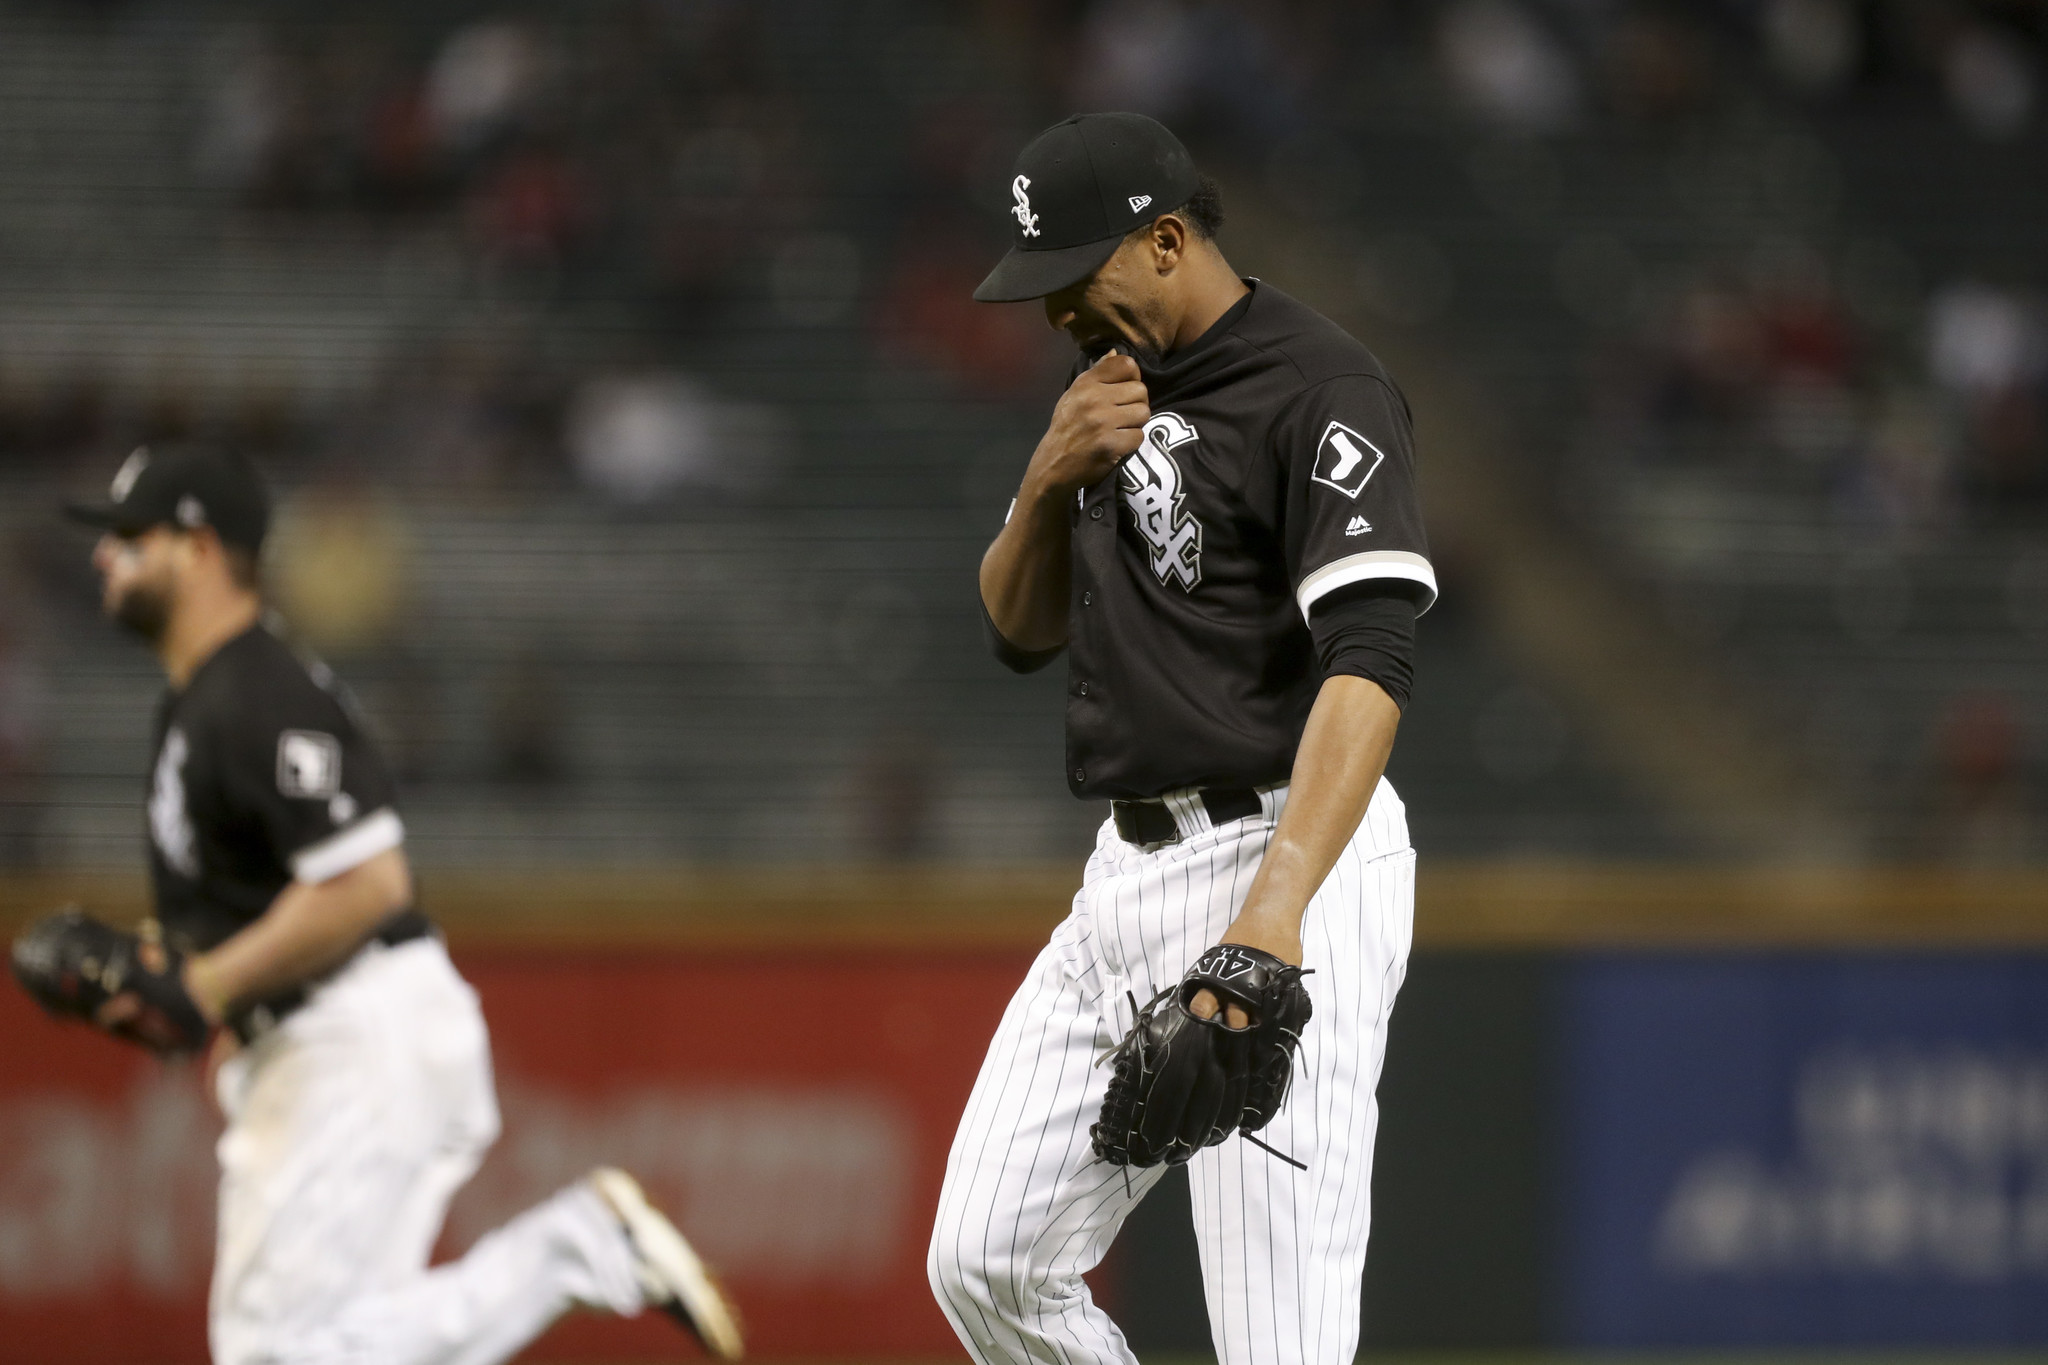 White Sox open homestand with 12-1 loss to Nationals as bullpen gives up 9 runs in 3 innings